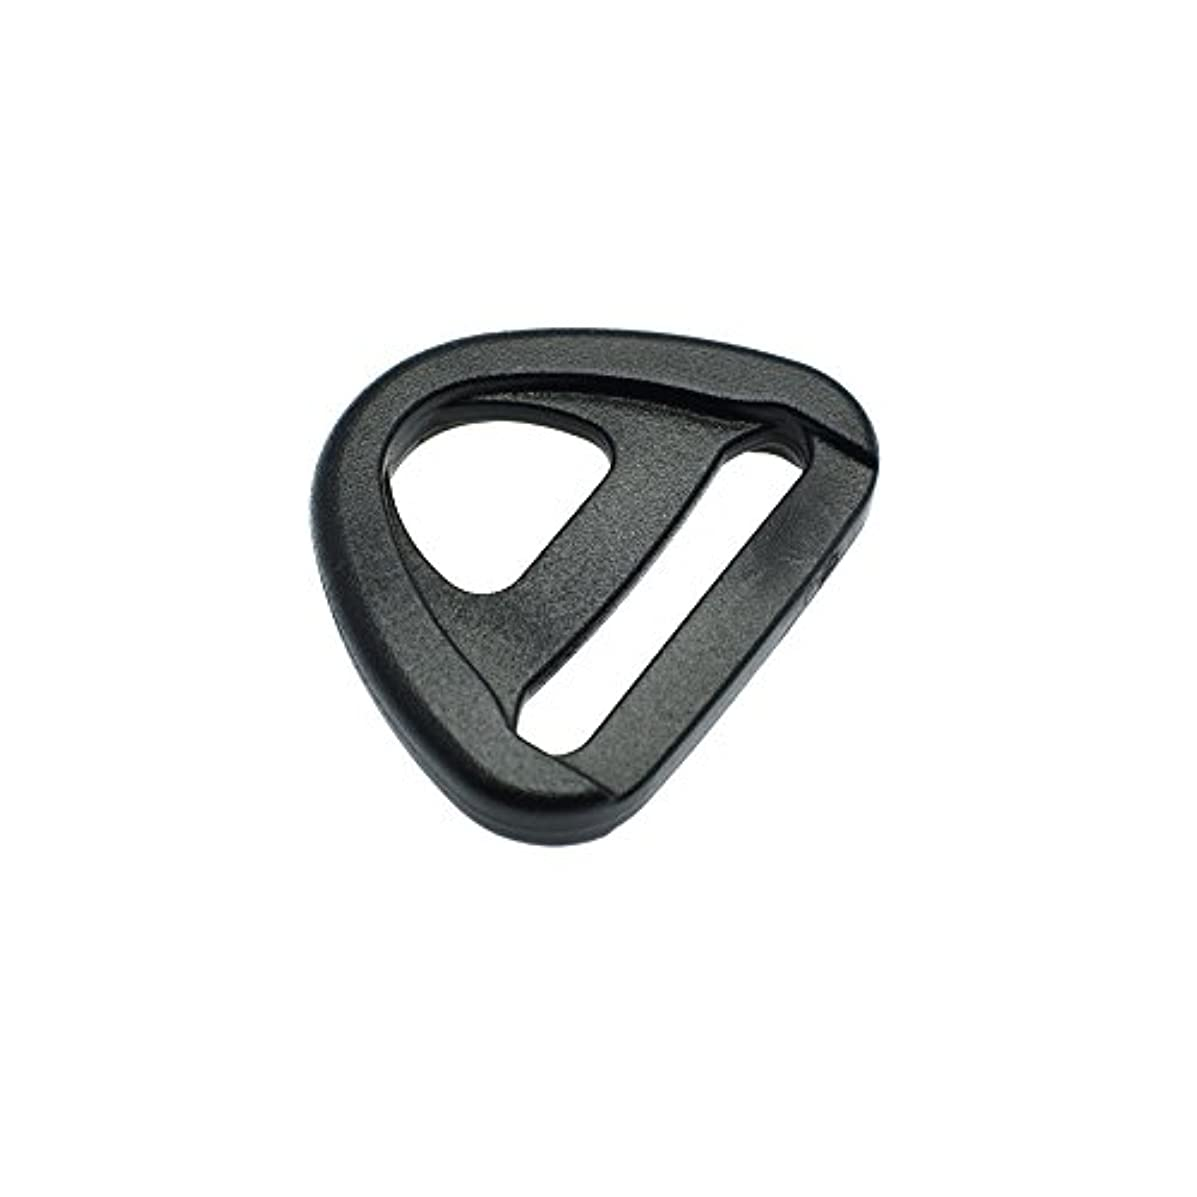 20pcs Plastic Adjuster with bar Swivel Clip D-Ring Loop Insert Buckle Backpack Straps (Webbing Size 1